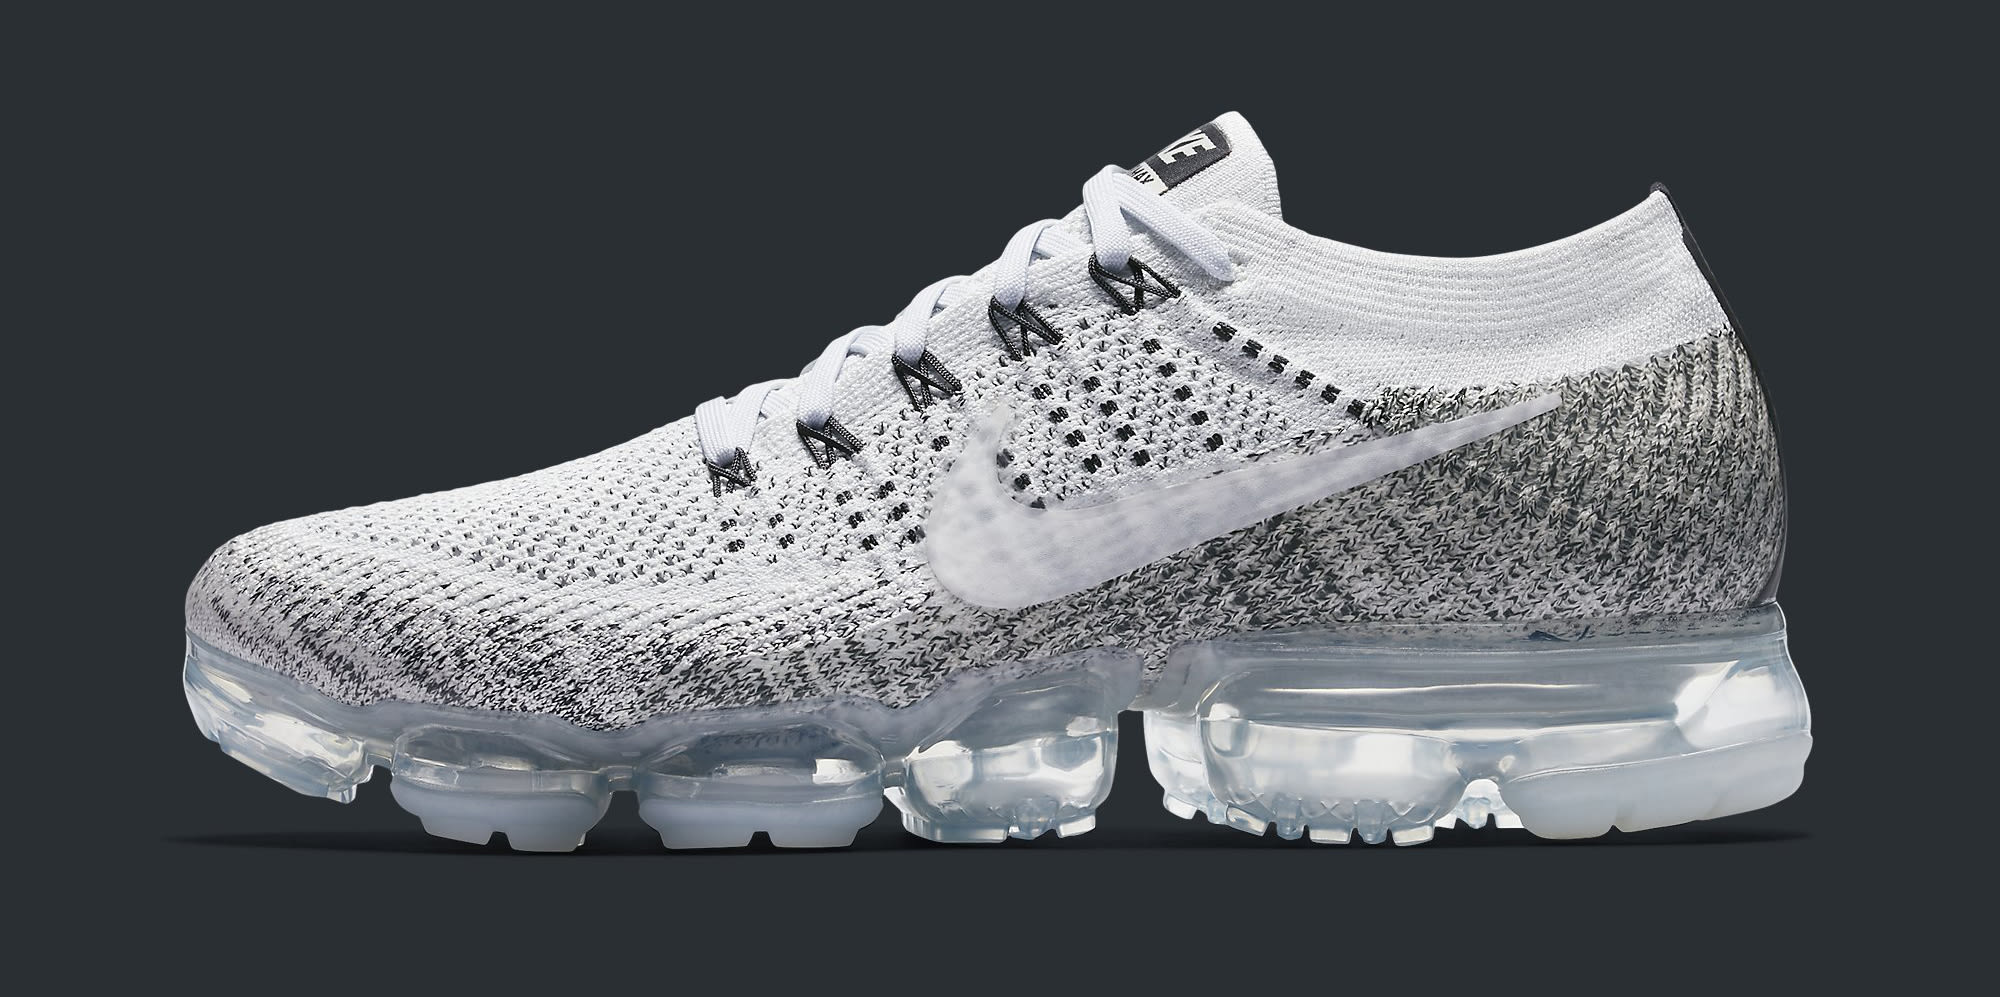 3 6???? Cheap Nike AIR VAPORMAX